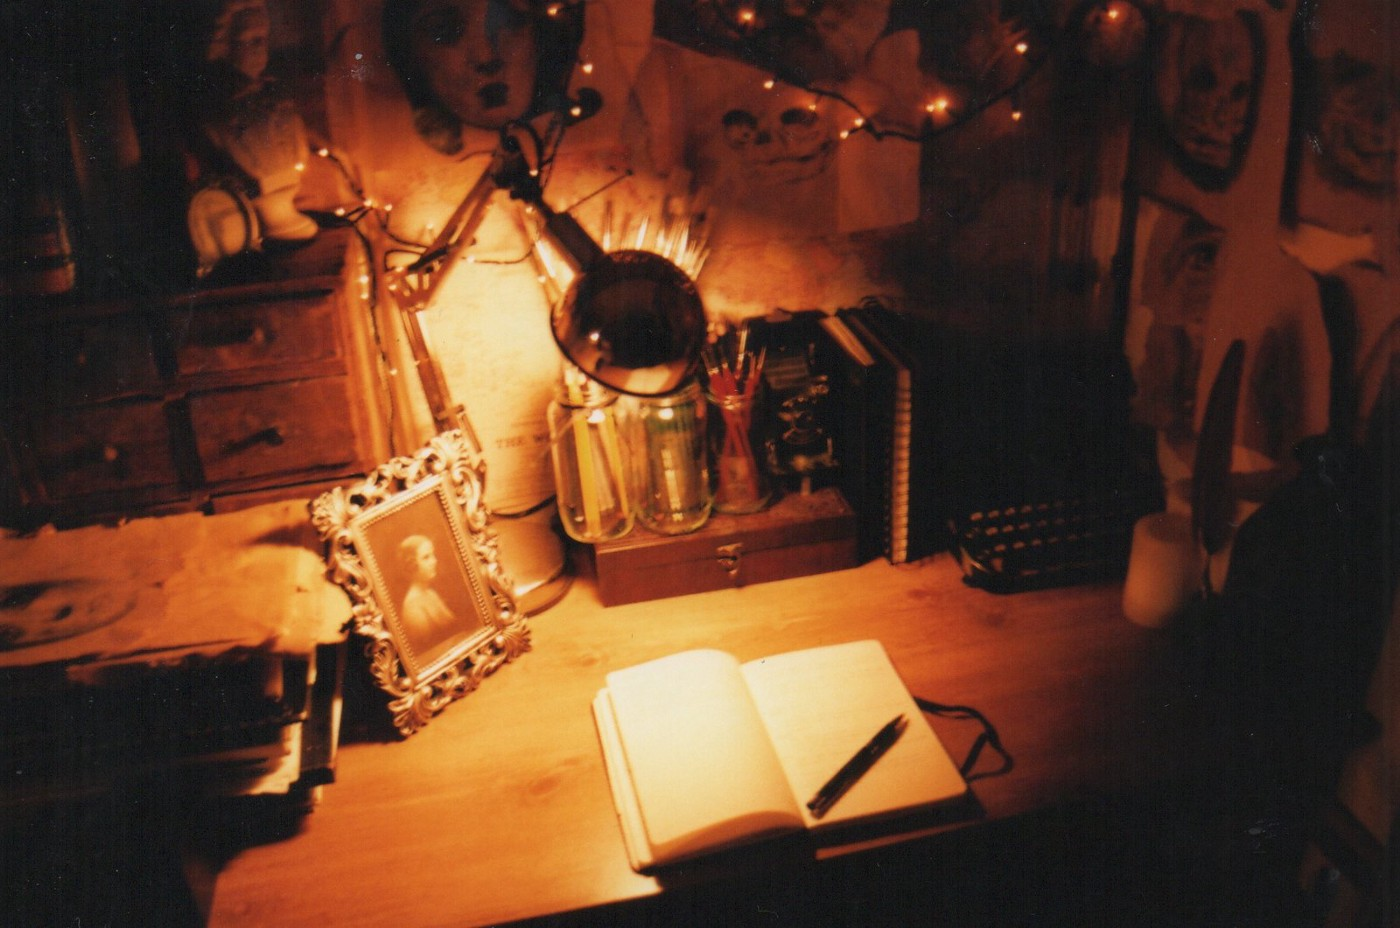 Dimly lit desk with an open notebook with pencil illuminated by a lamp.